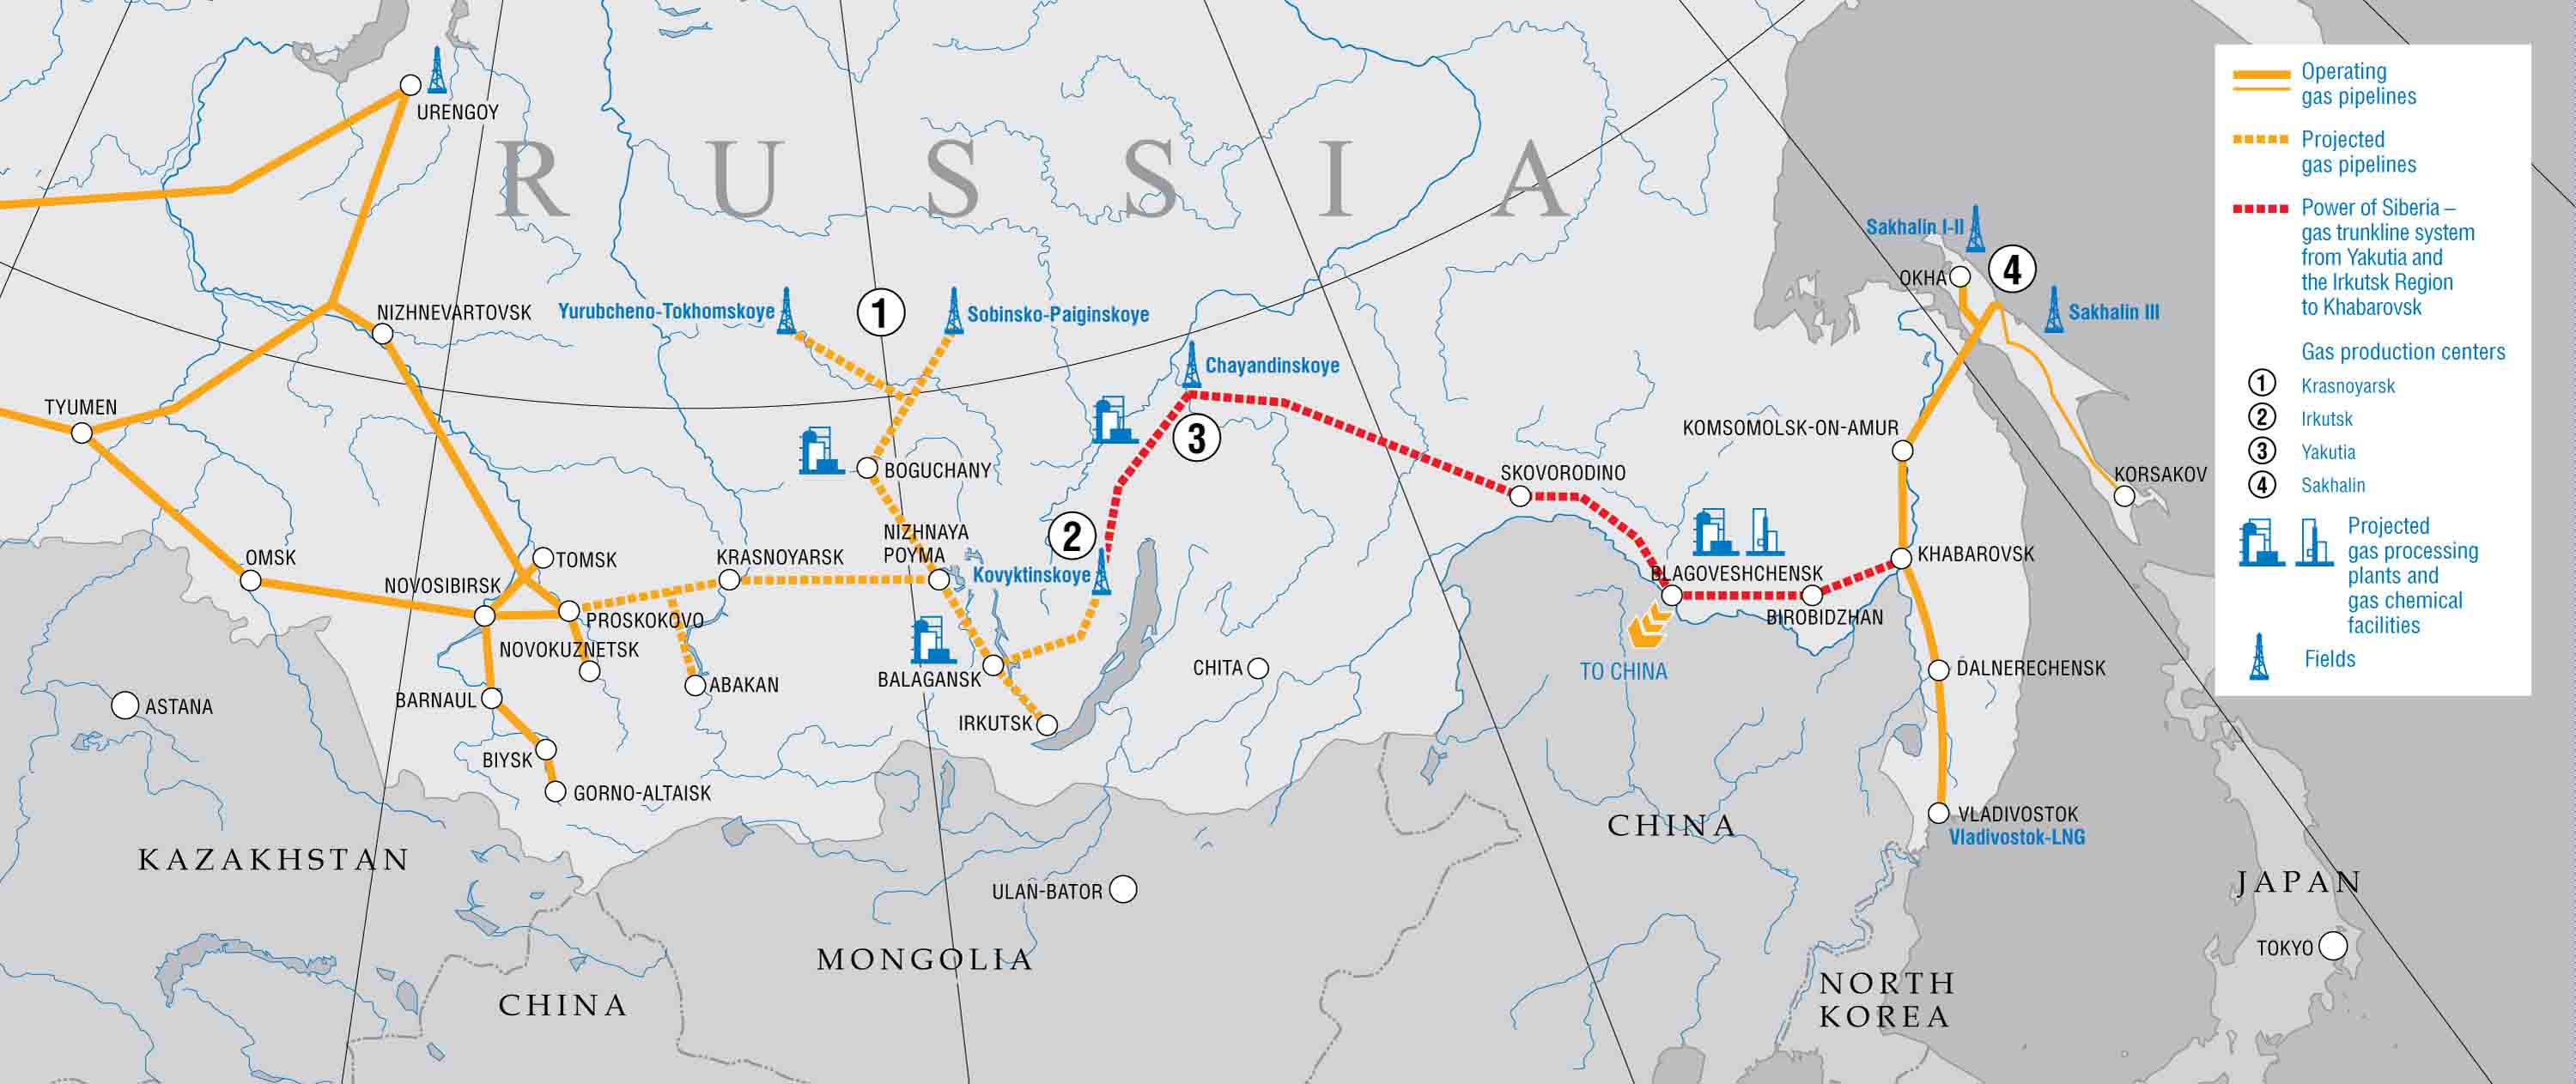 Image 7: Existing and proposed natural gas pipelines between Russia and China – Source : Gazprom